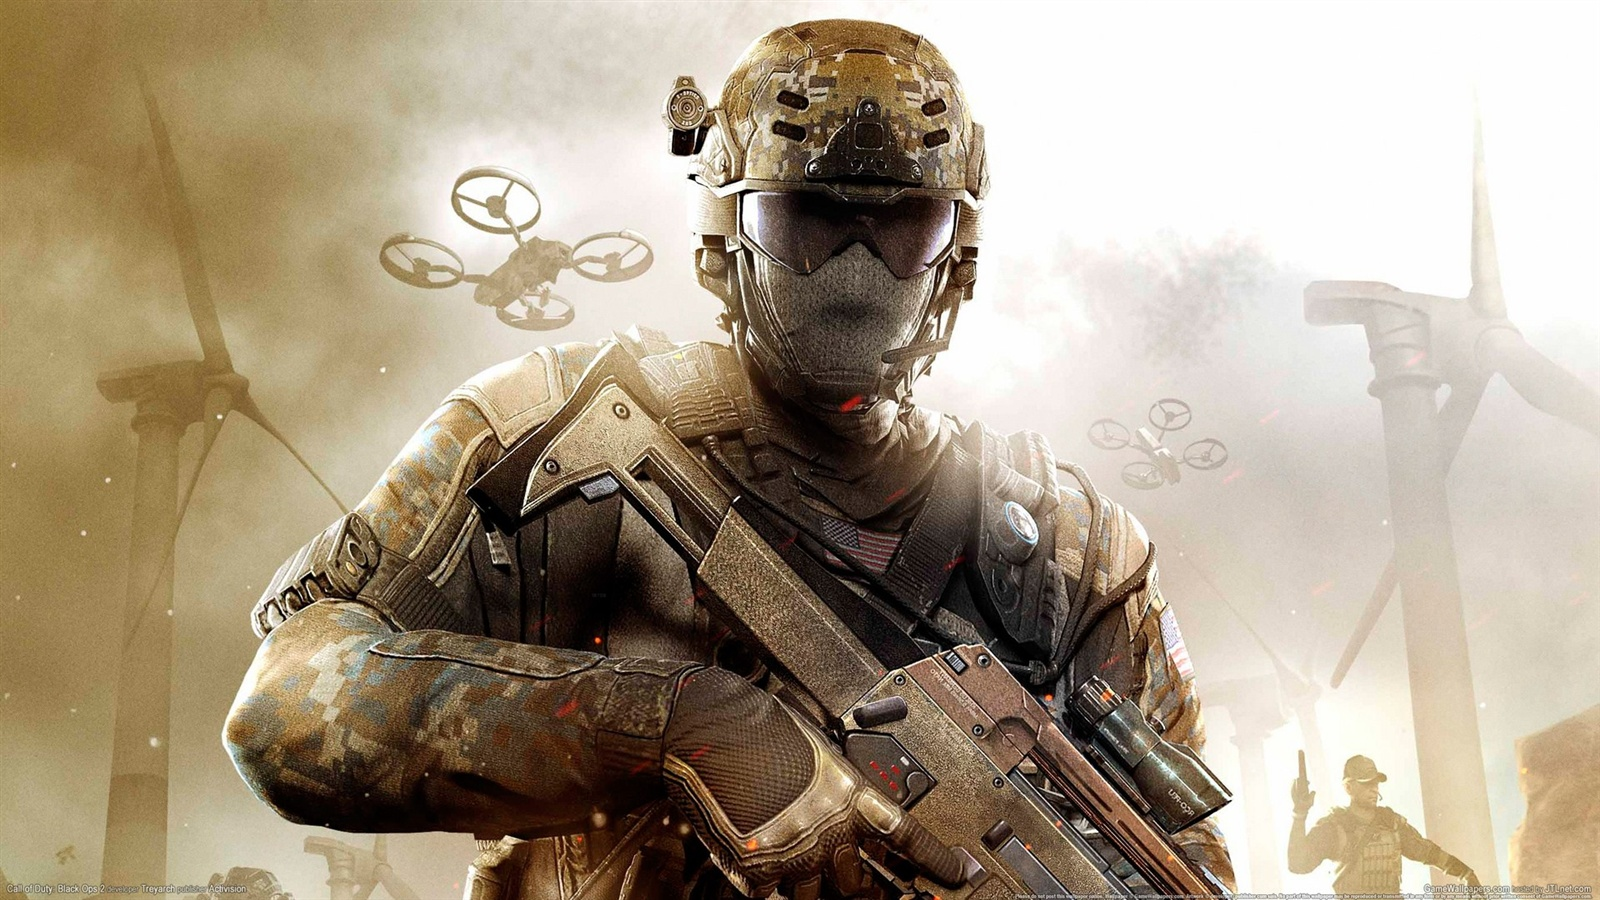 Wallpaper Hot Game Call Of Duty Black Ops 2 1920x1080 Full HD 2K Picture Image